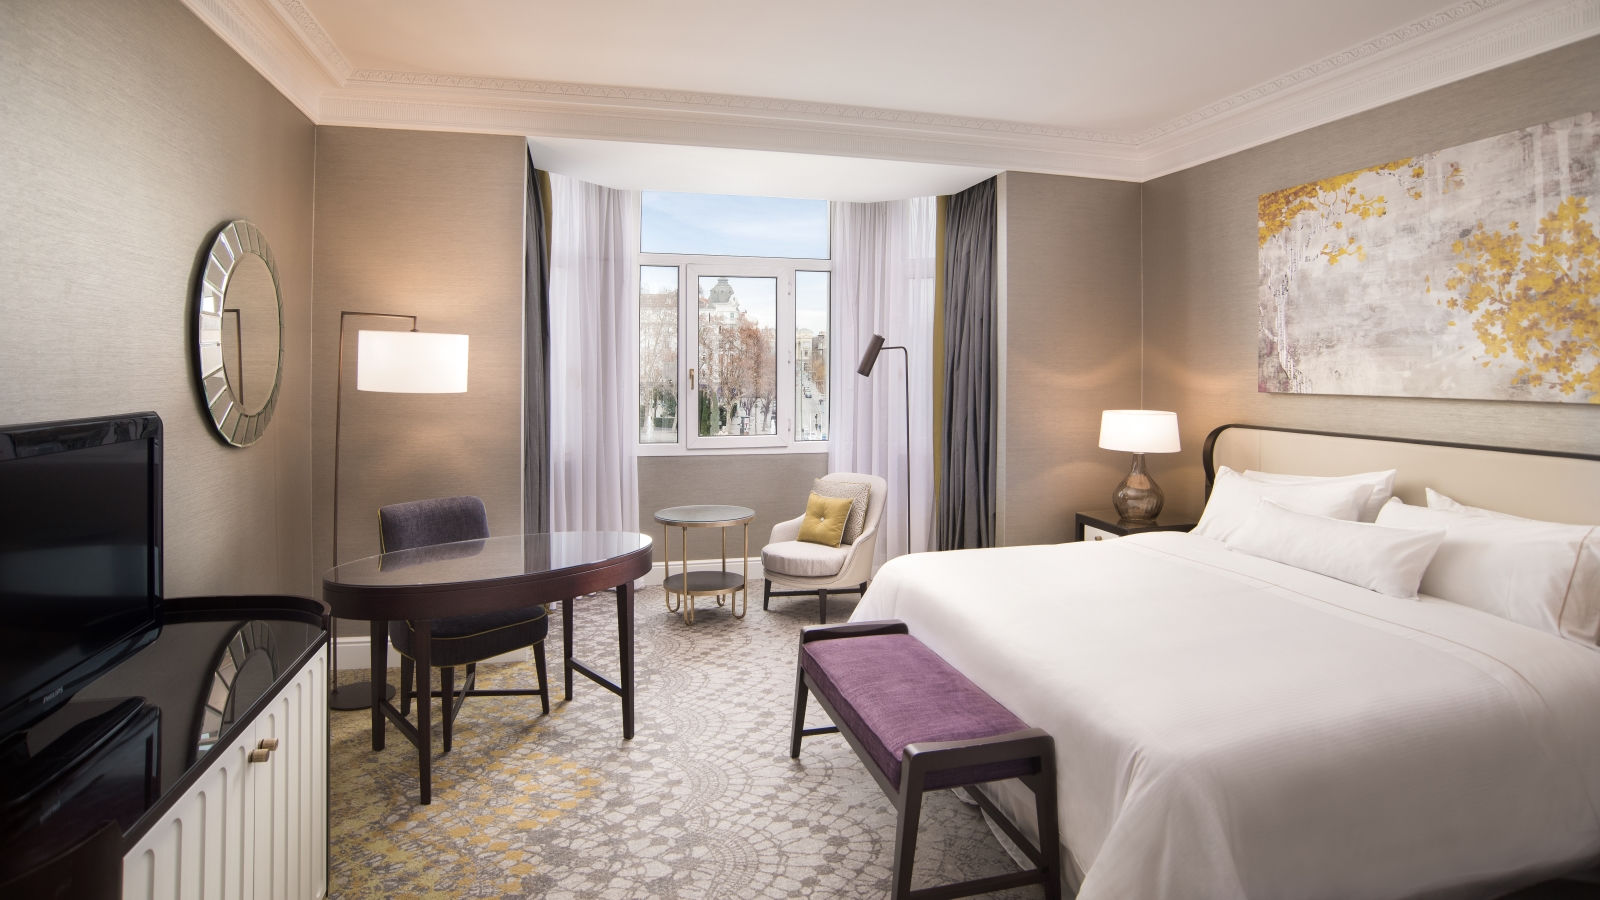 PREMIUM VIEW ROOM AT THE WESTIN PALACE, MADRID